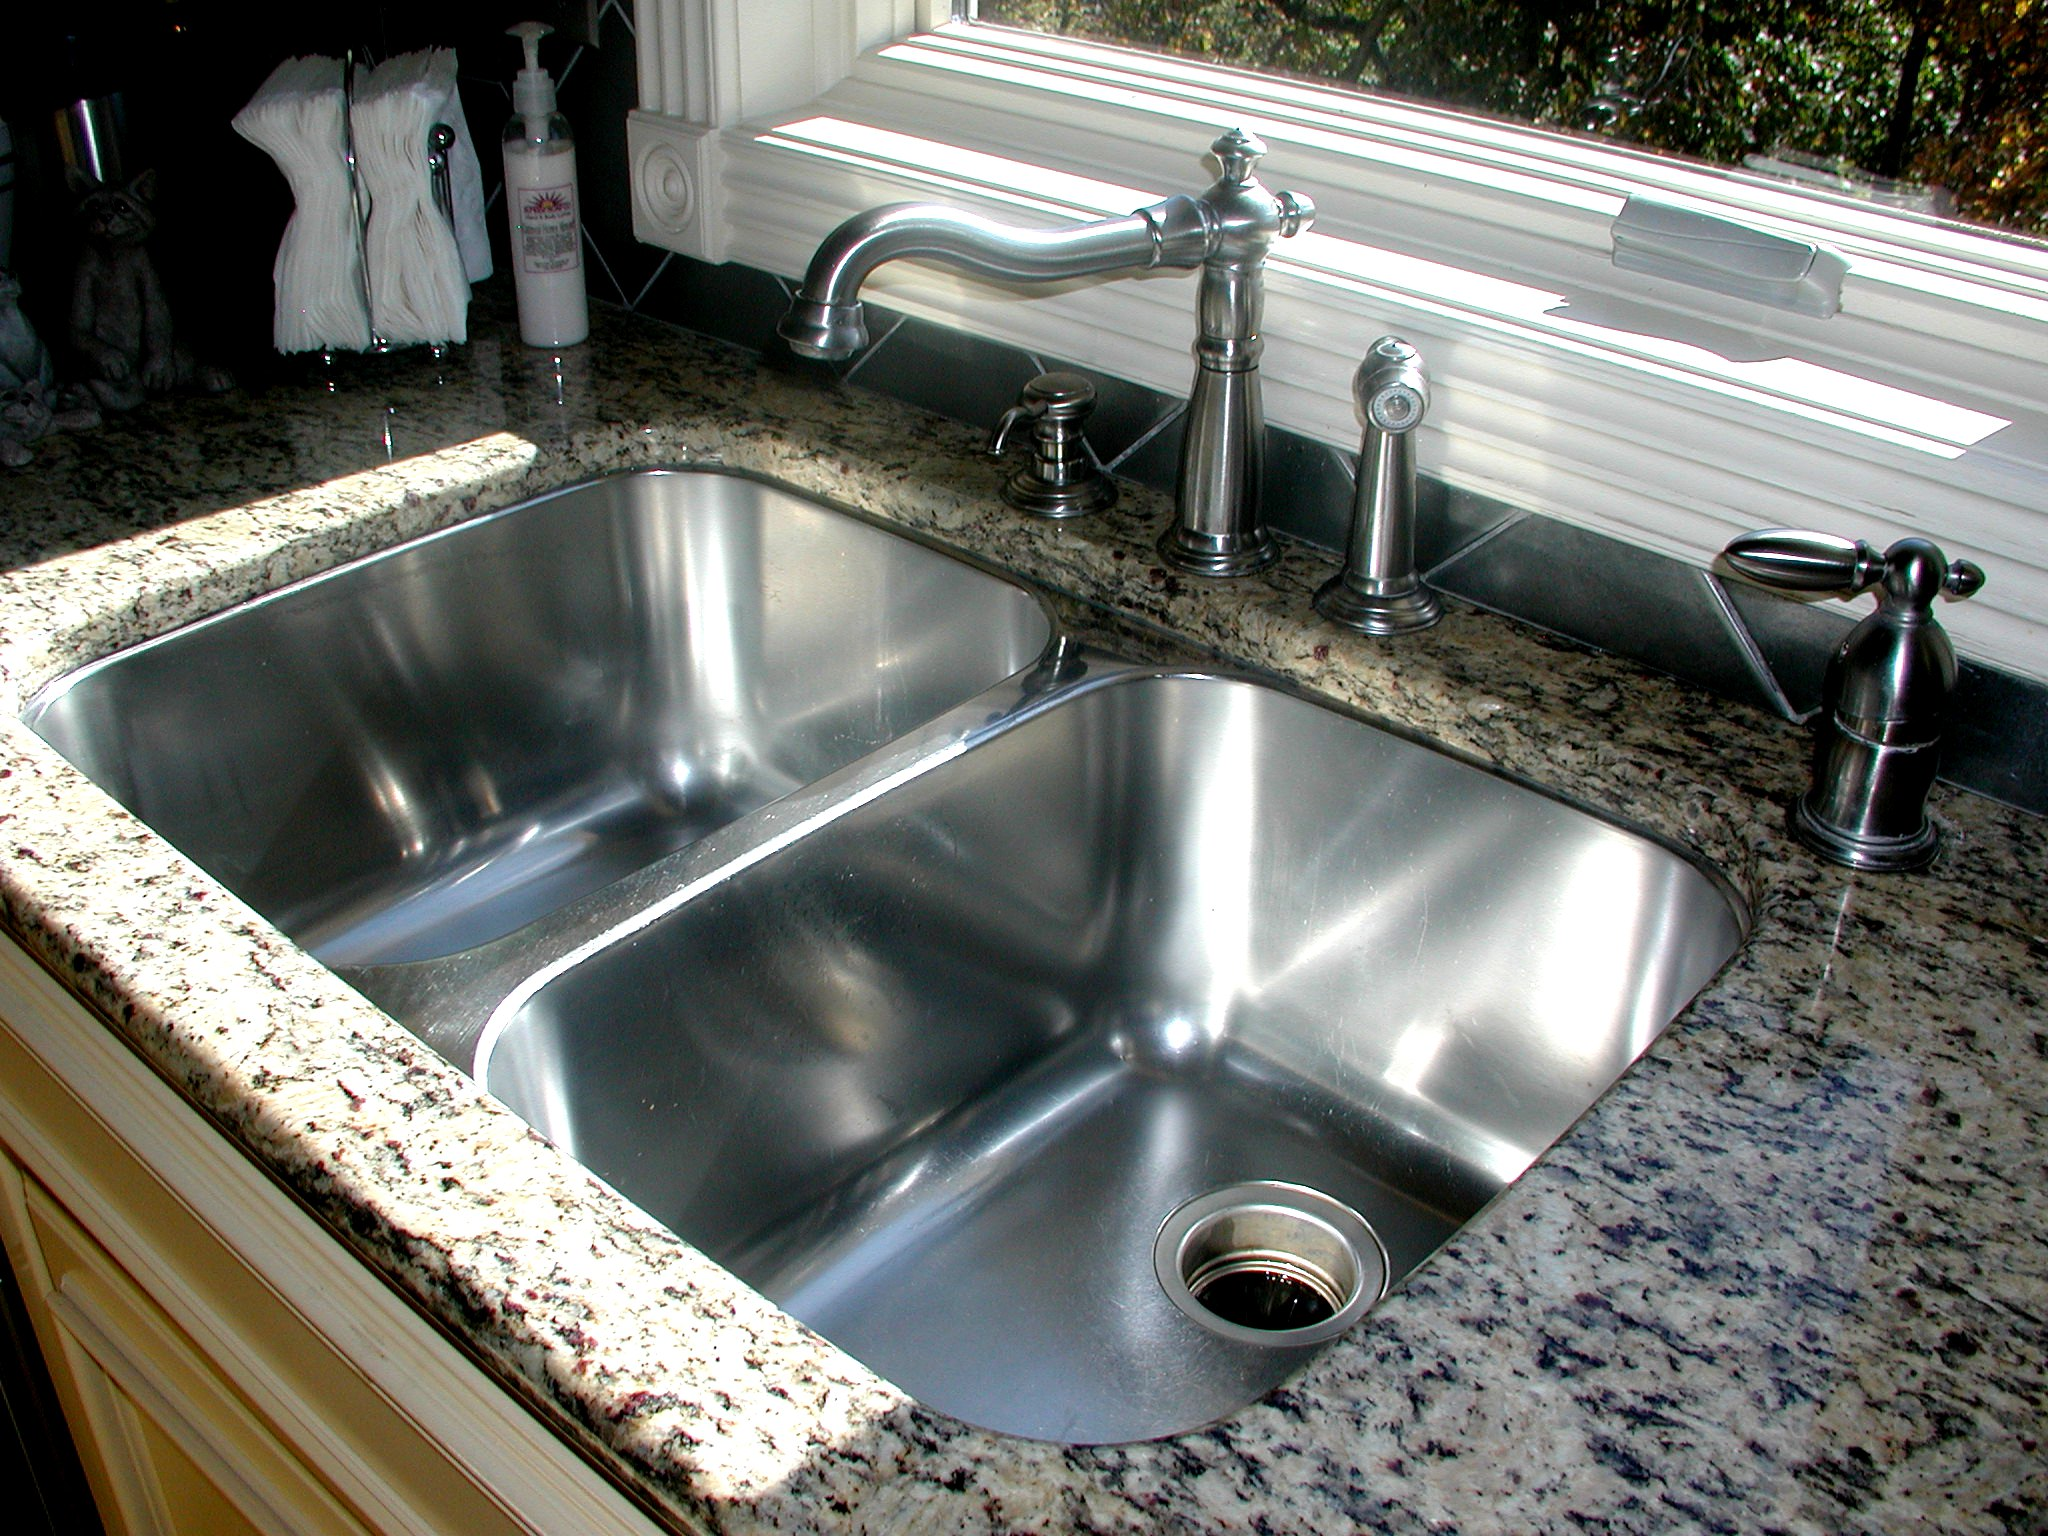 Modern corner kitchen sinks - Olympus Digital Camera